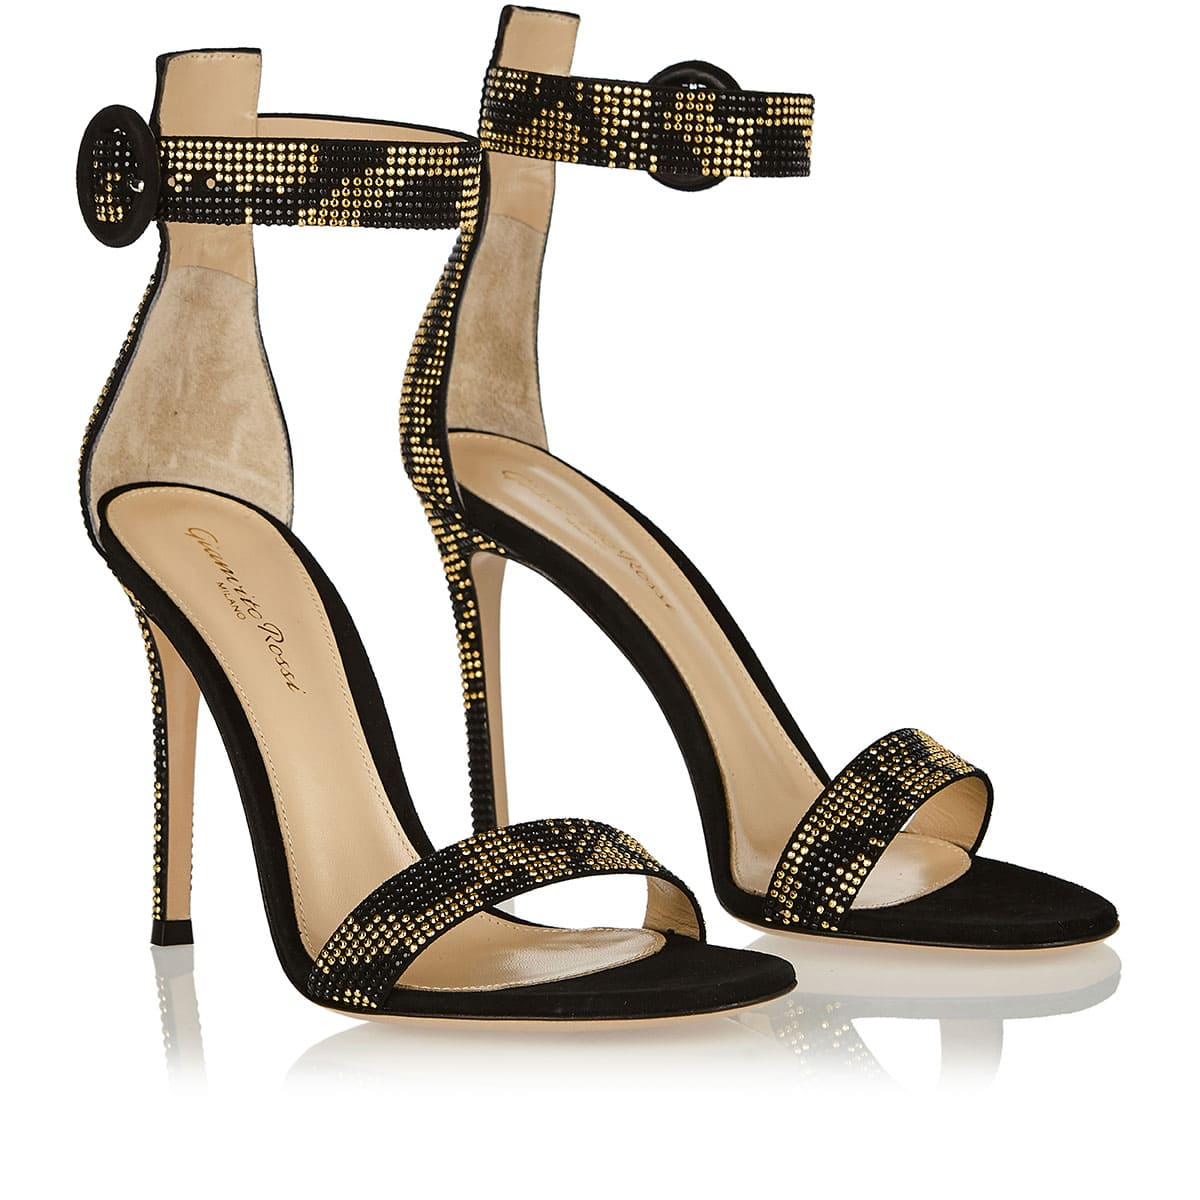 Ronnie stud-embellished sandals